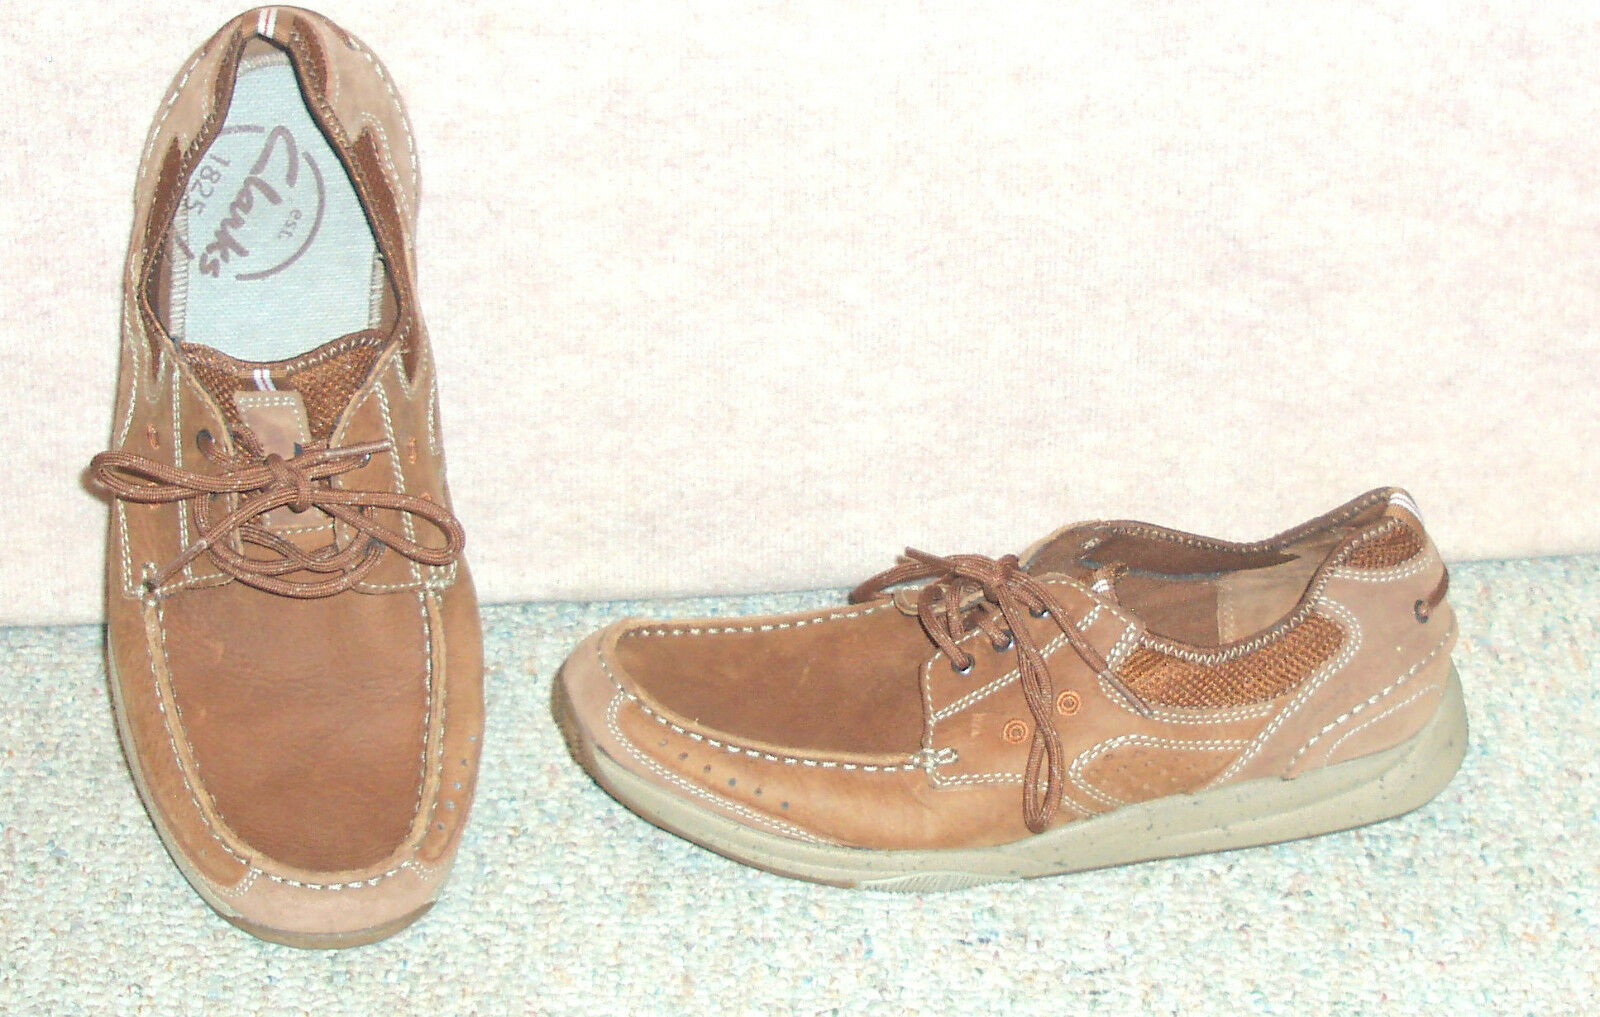 Men's brown shoes leather upper CLARKS boat shoes brown / sz 11 M 91bf1b